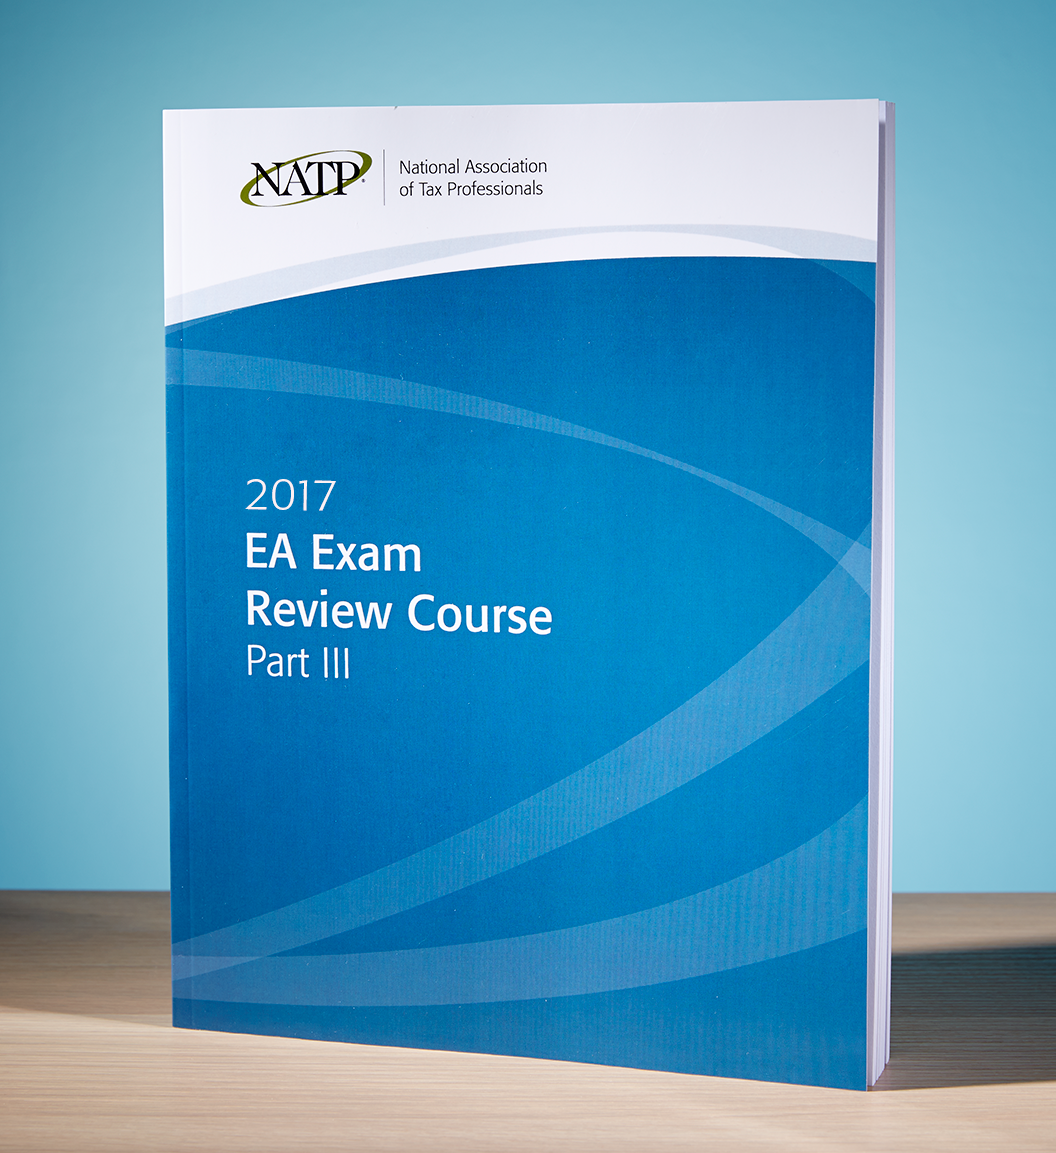 EA Exam Review Course Part III Textbook (2017) - #3705